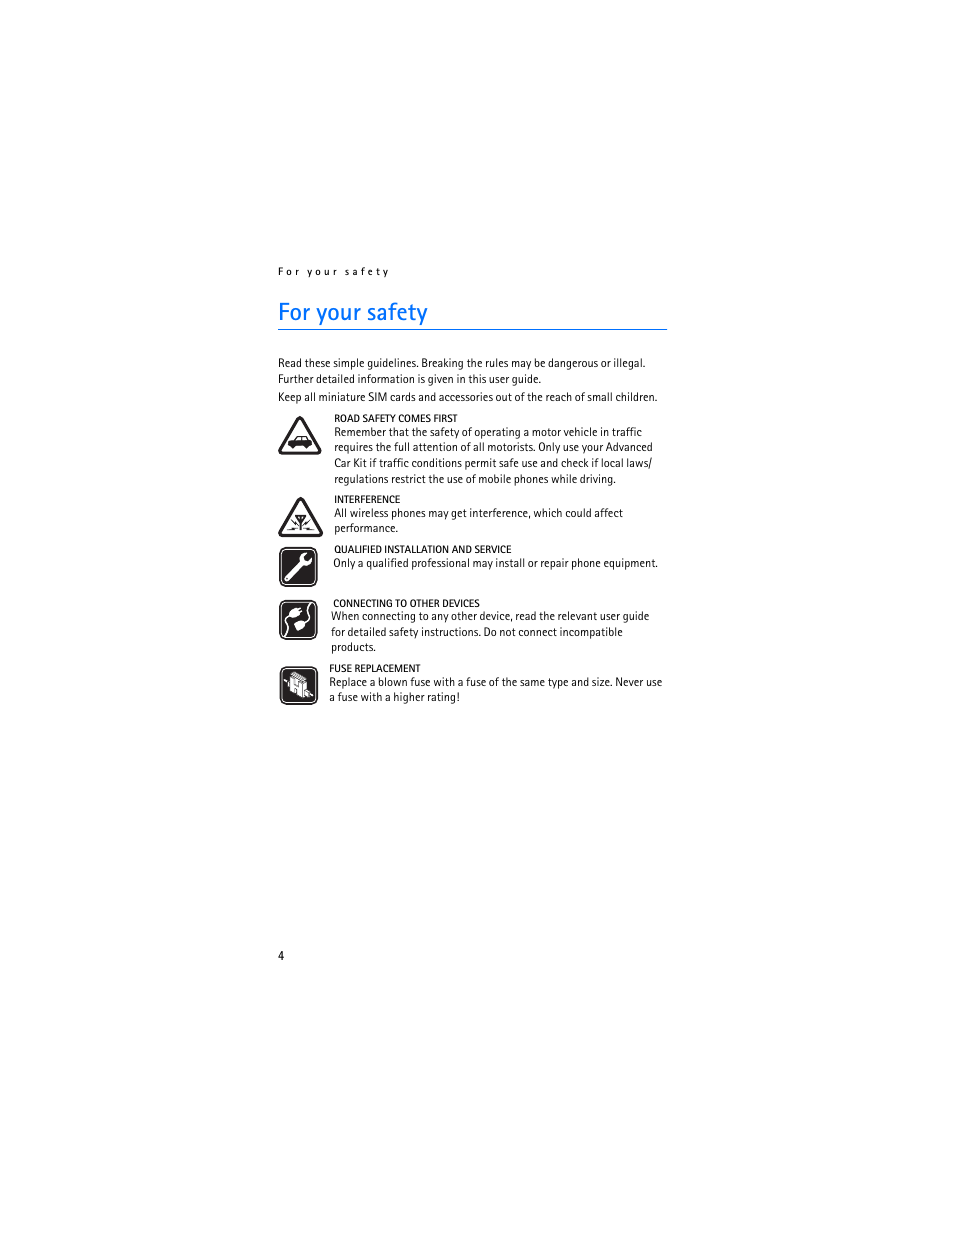 nokia ck 7w user manual